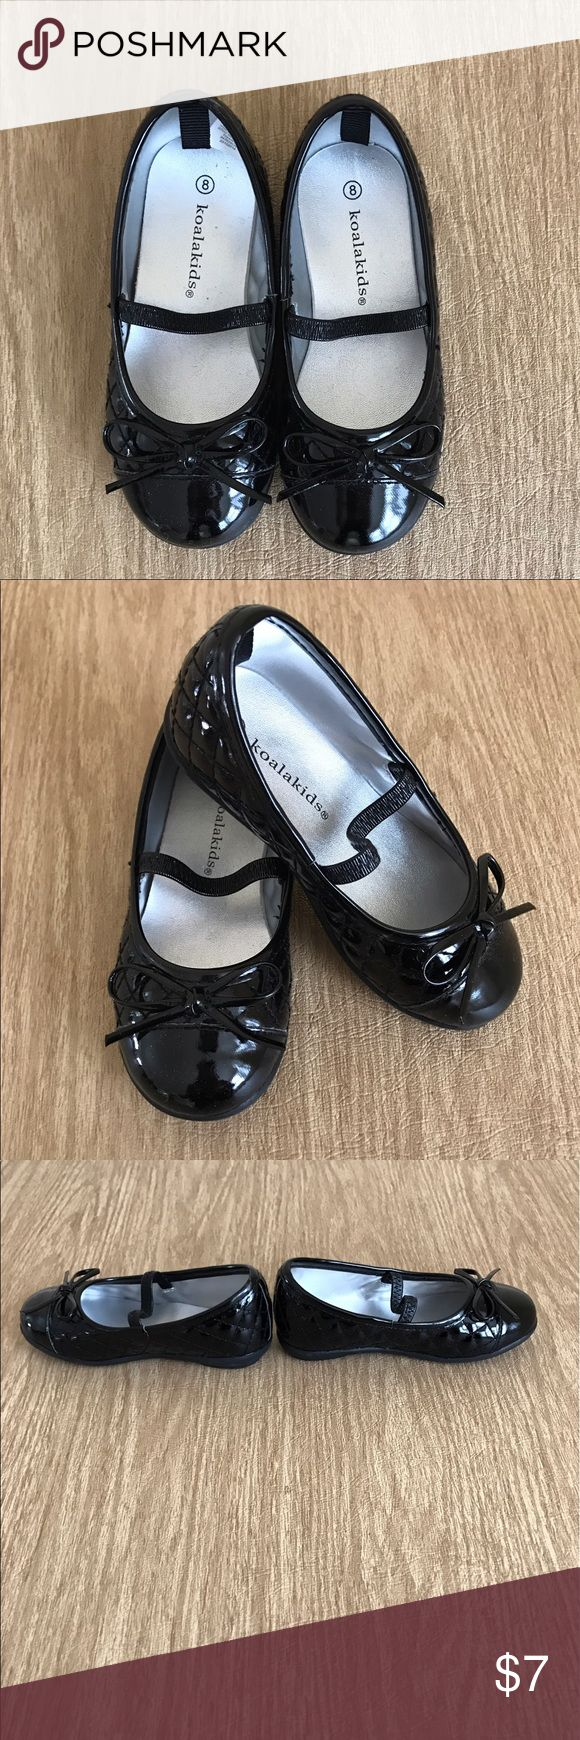 NWOT Black Toddler Dress Shoes New without tags Koala Baby dress shoes.  Perfect for dressing up any outfit. Shoes Dress Shoes